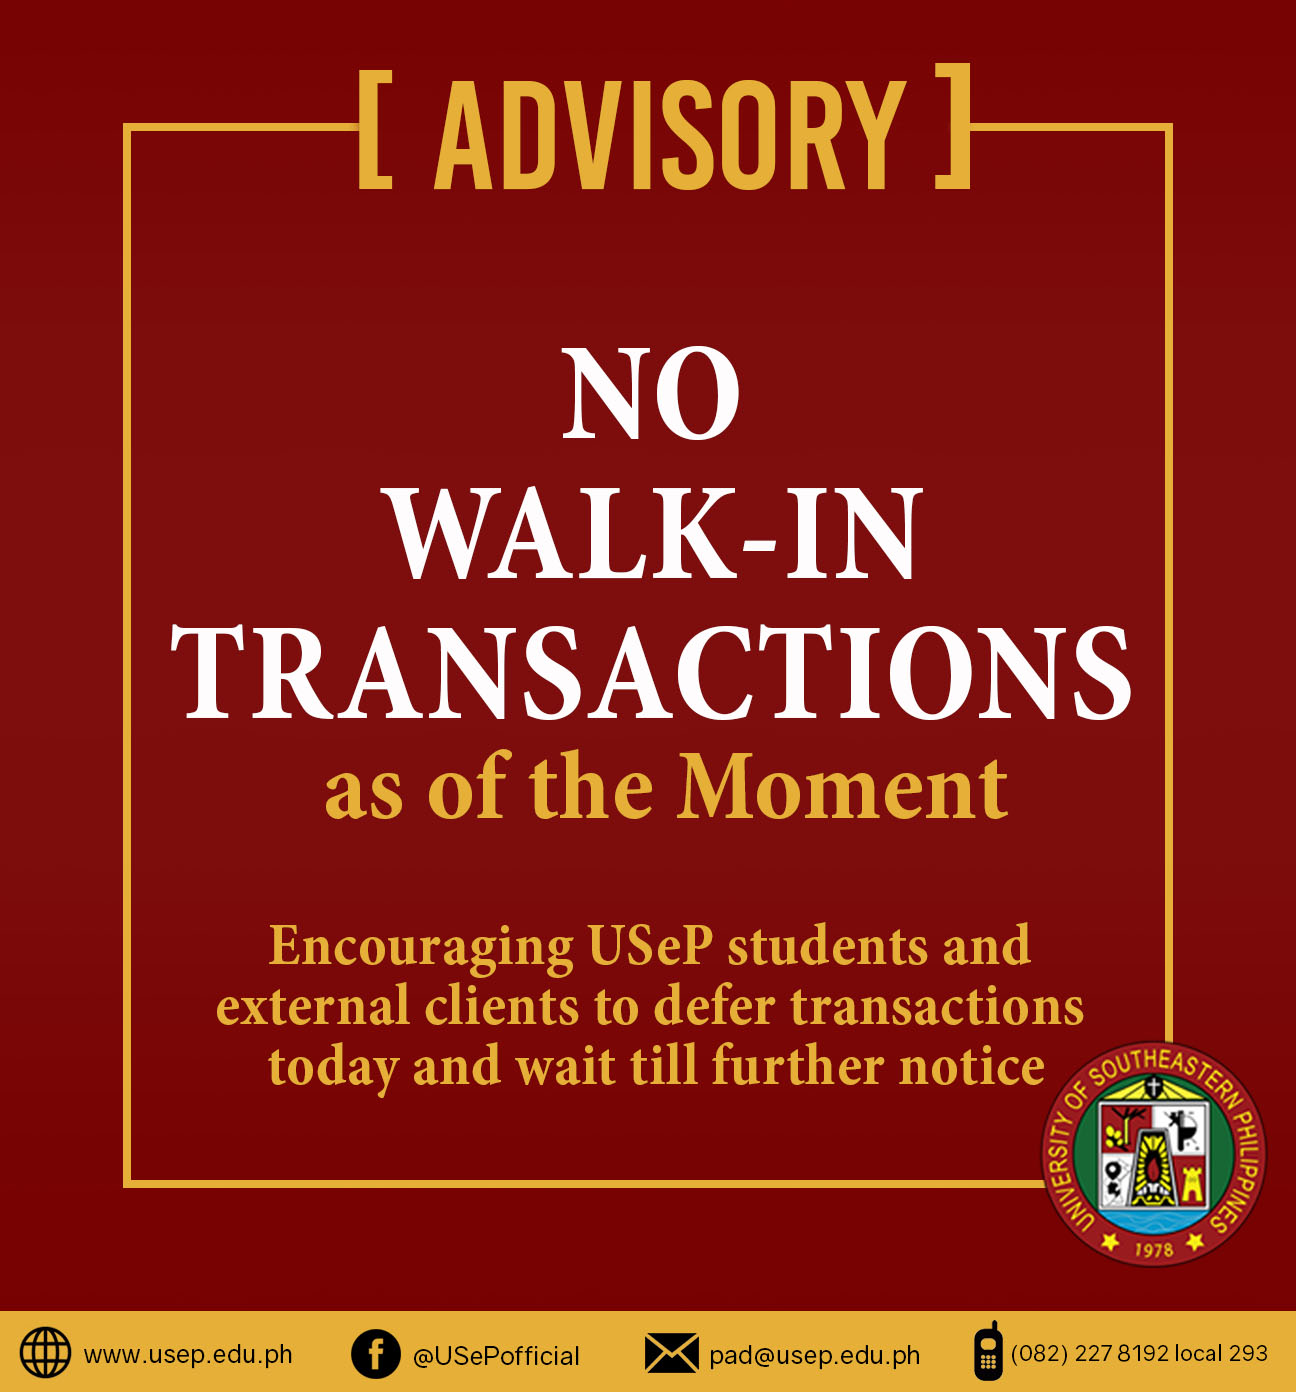 advisory-for-no-walk-in-transactions